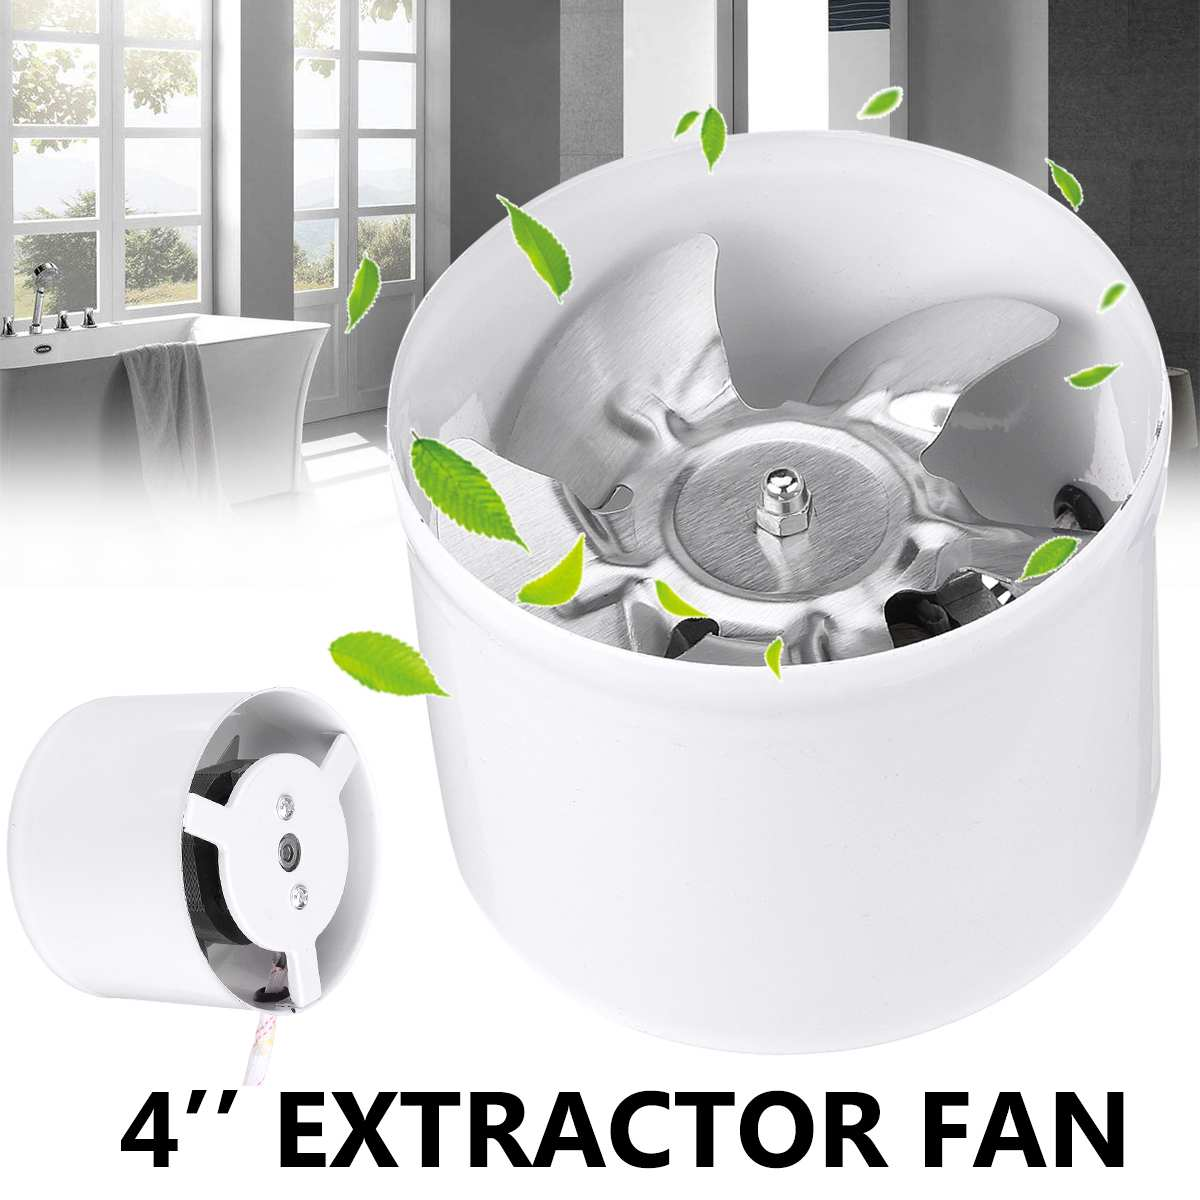 25W 4 inch <font><b>duct</b></font> <font><b>fan</b></font> air ventilator metal pipe ventilation exhaust <font><b>fan</b></font> mini extractor bathroom <font><b>fan</b></font> wall <font><b>fan</b></font> <font><b>100mm</b></font> 220V image